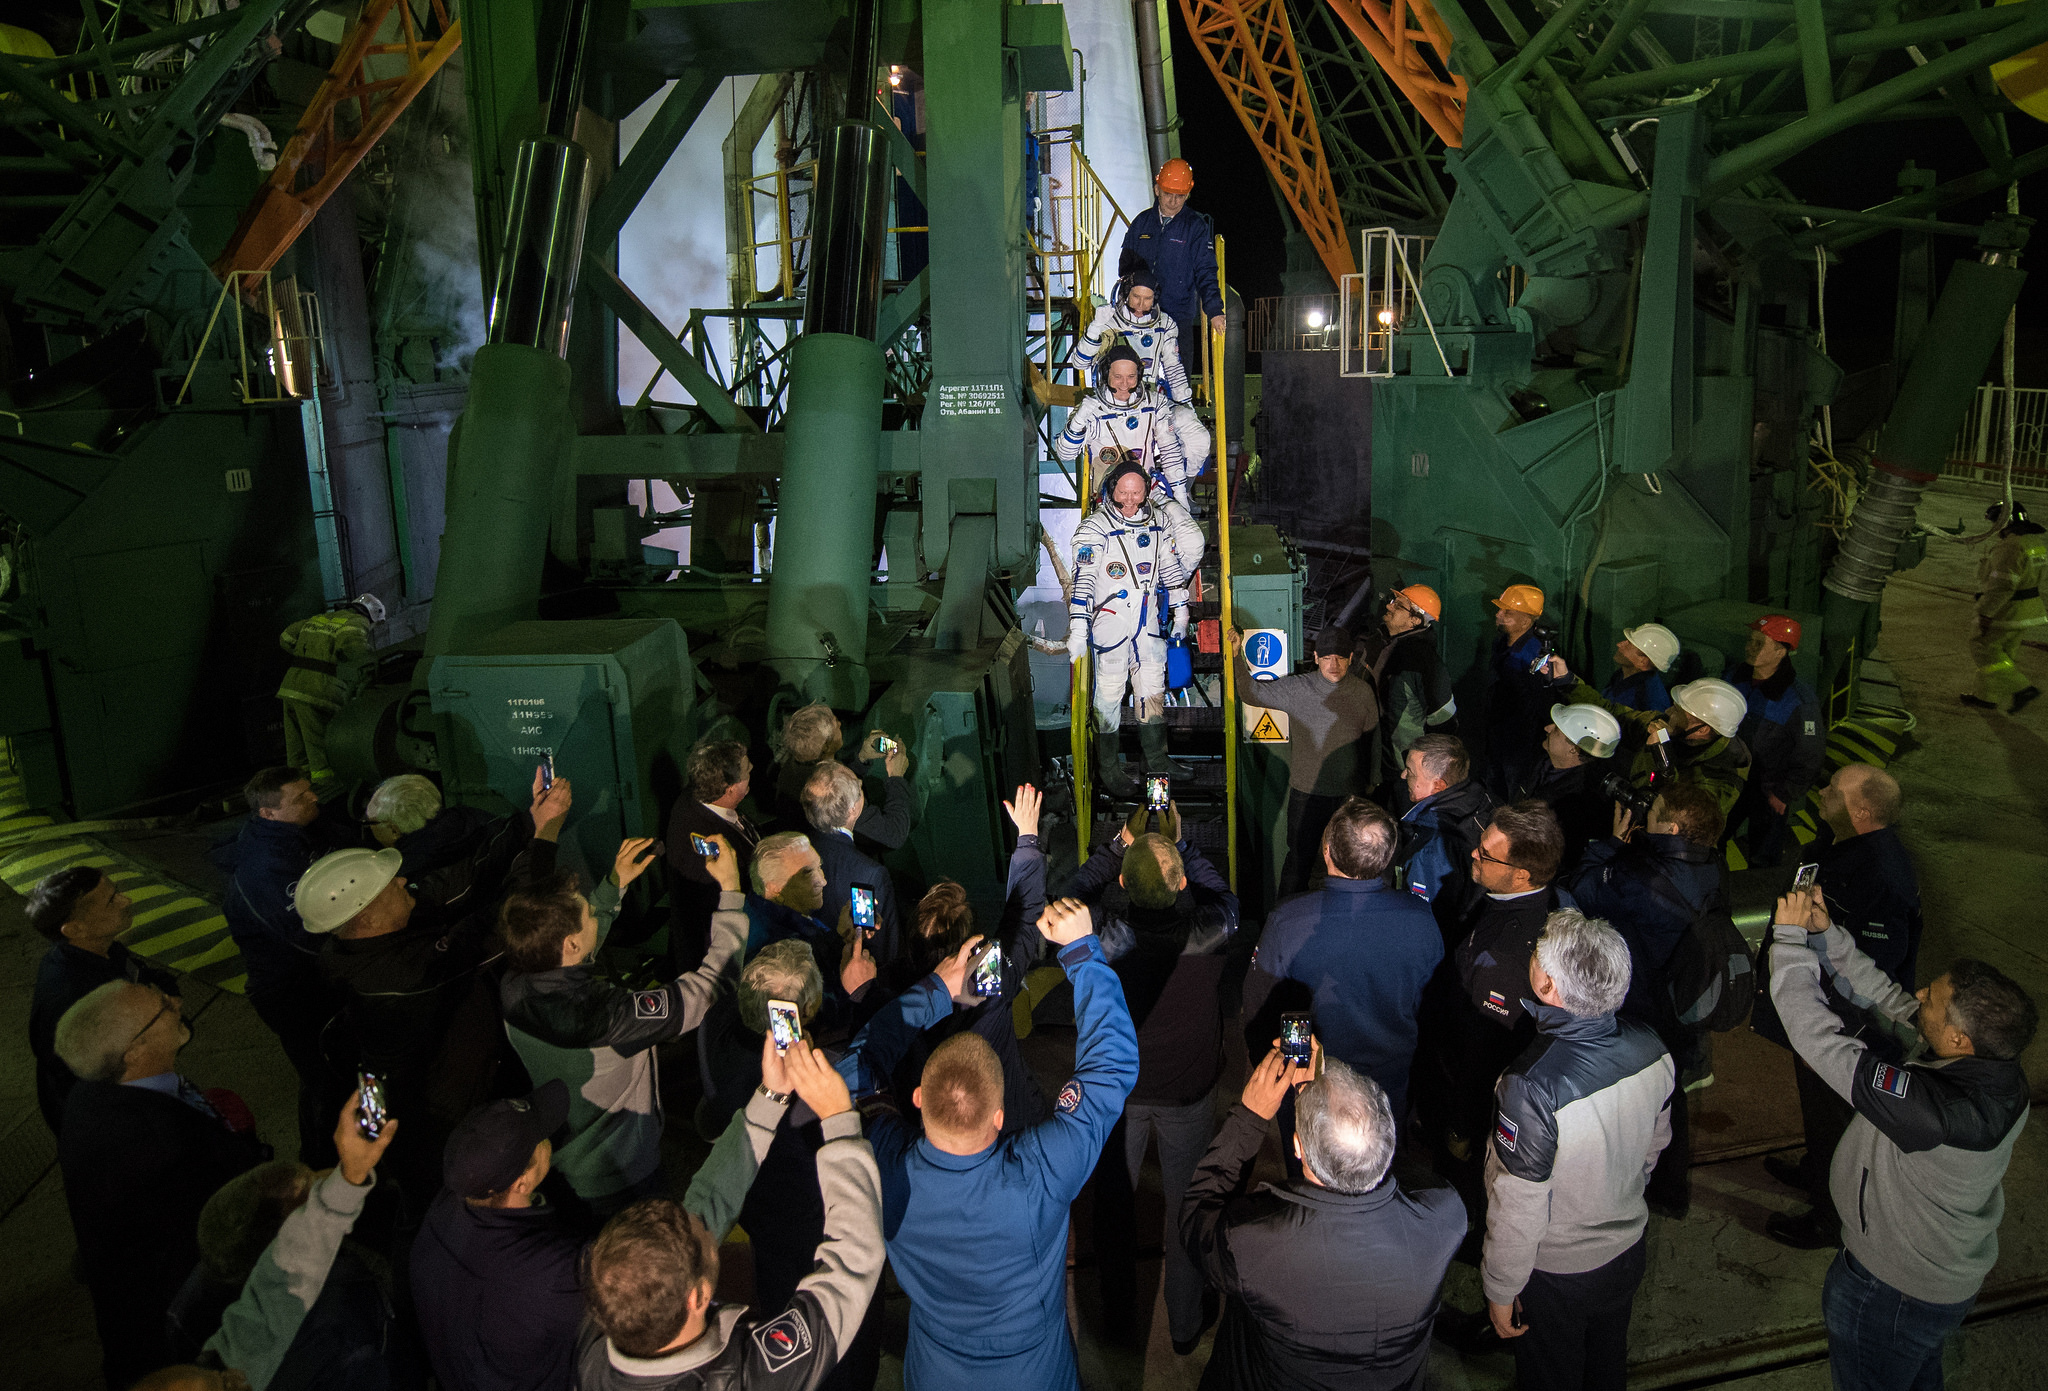 The crew says one more farewell before boarding their Soyuz MS-08 spacecraft. Credit: NASA/Joel Kowsky